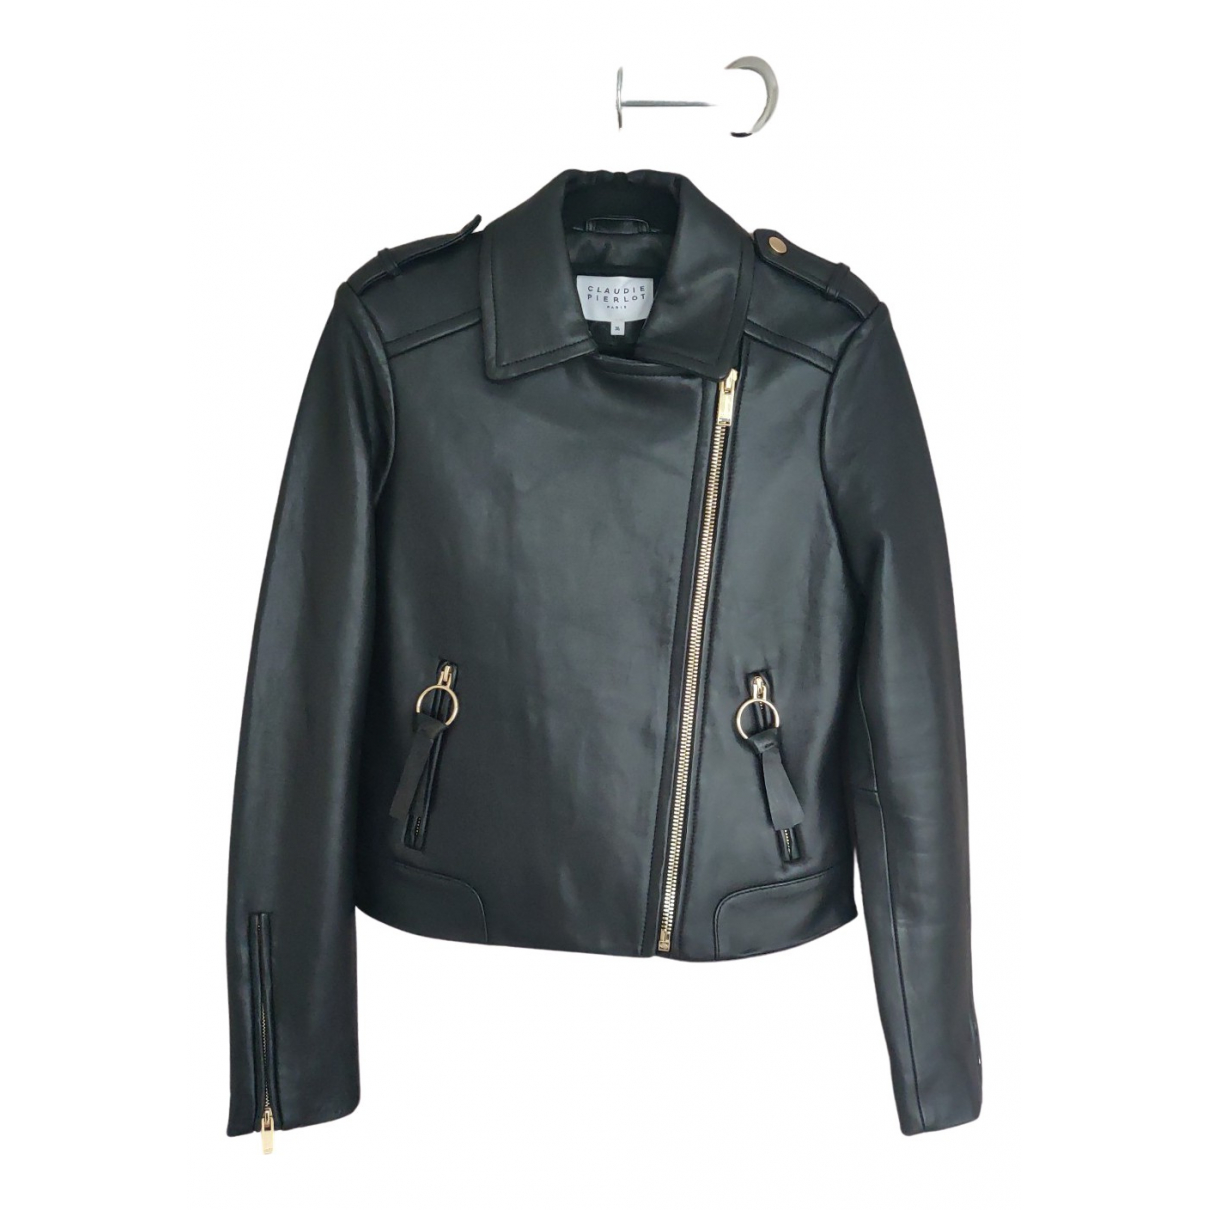 Claudie Pierlot Fall Winter 2019 Black Leather Leather jacket for Women 36 FR